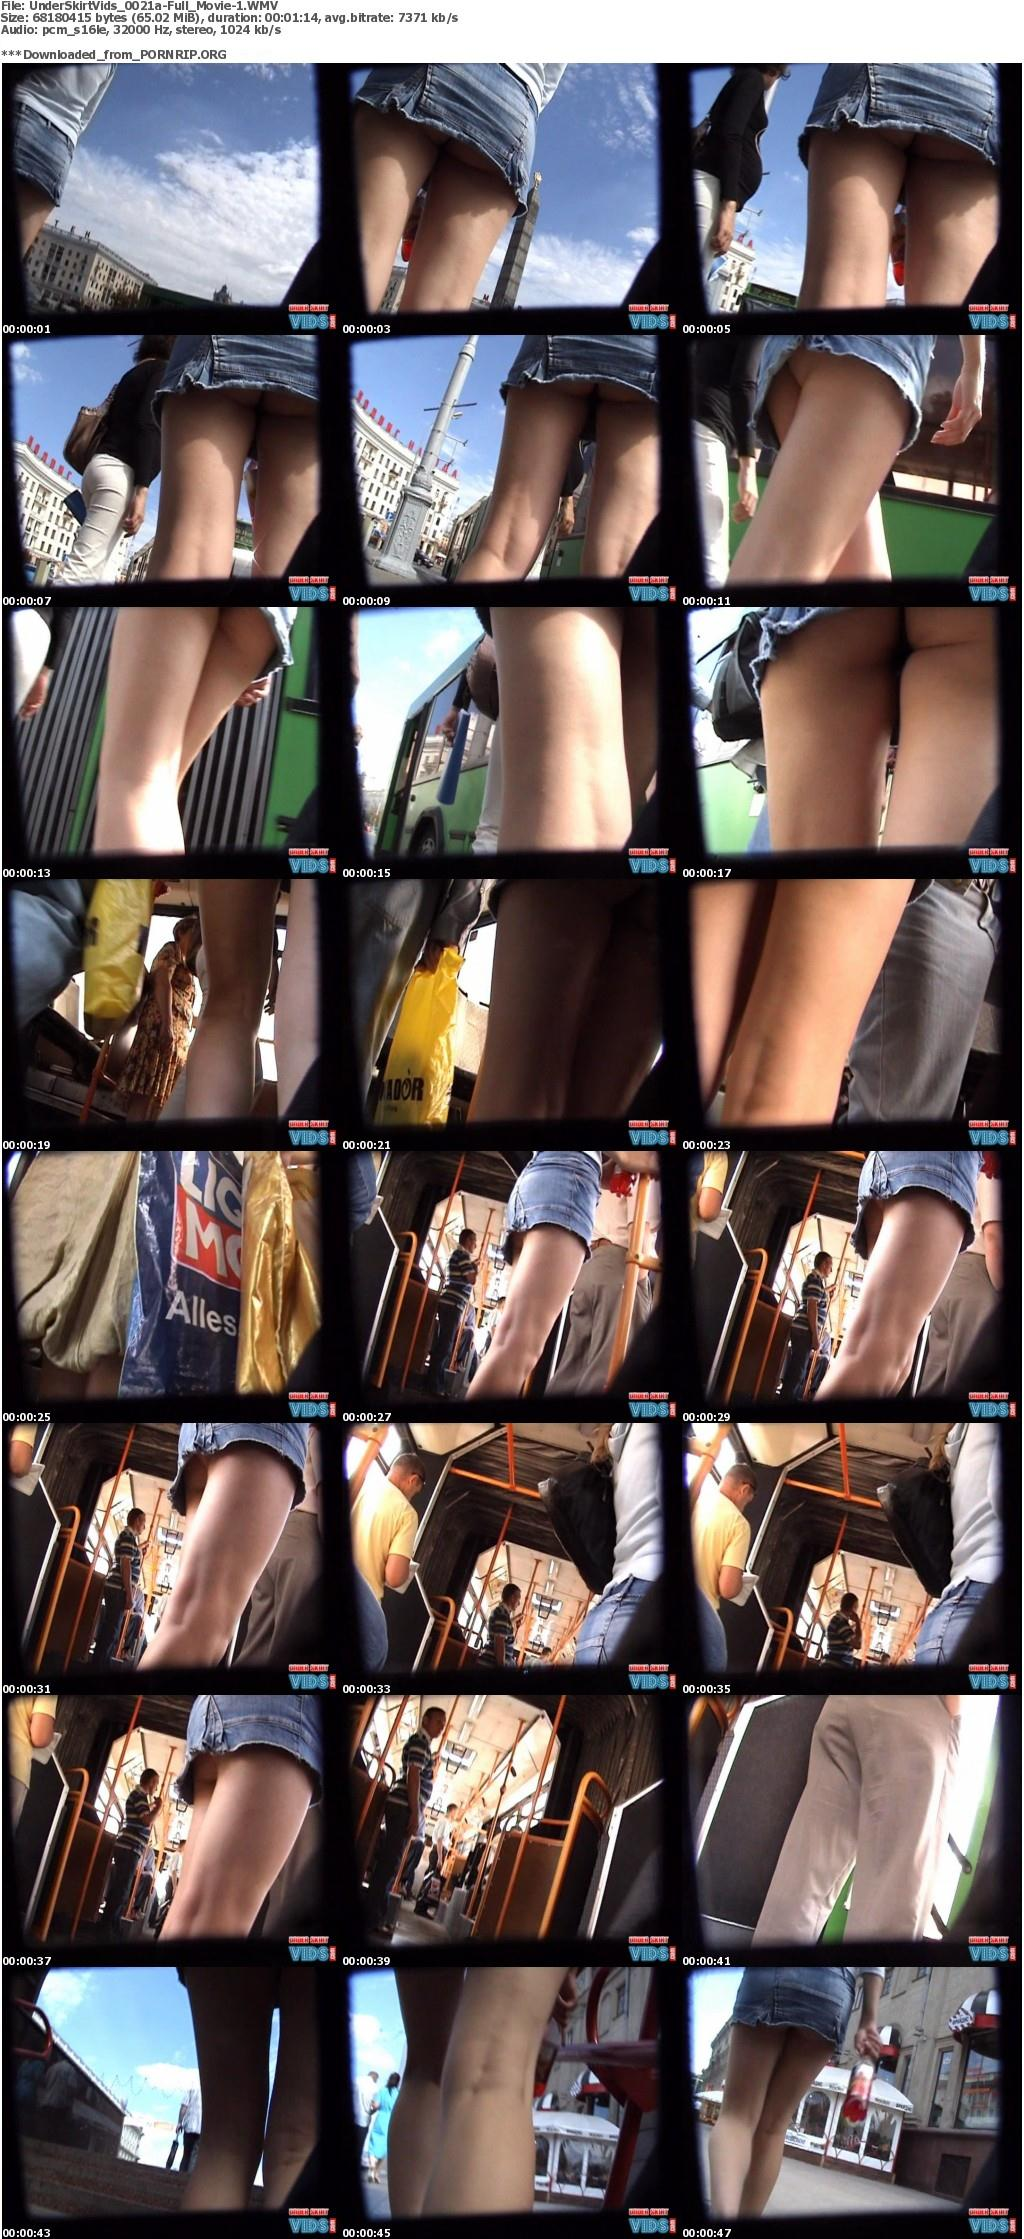 12134468_underskirtvids_0021a-full_movie-1_s.jpg